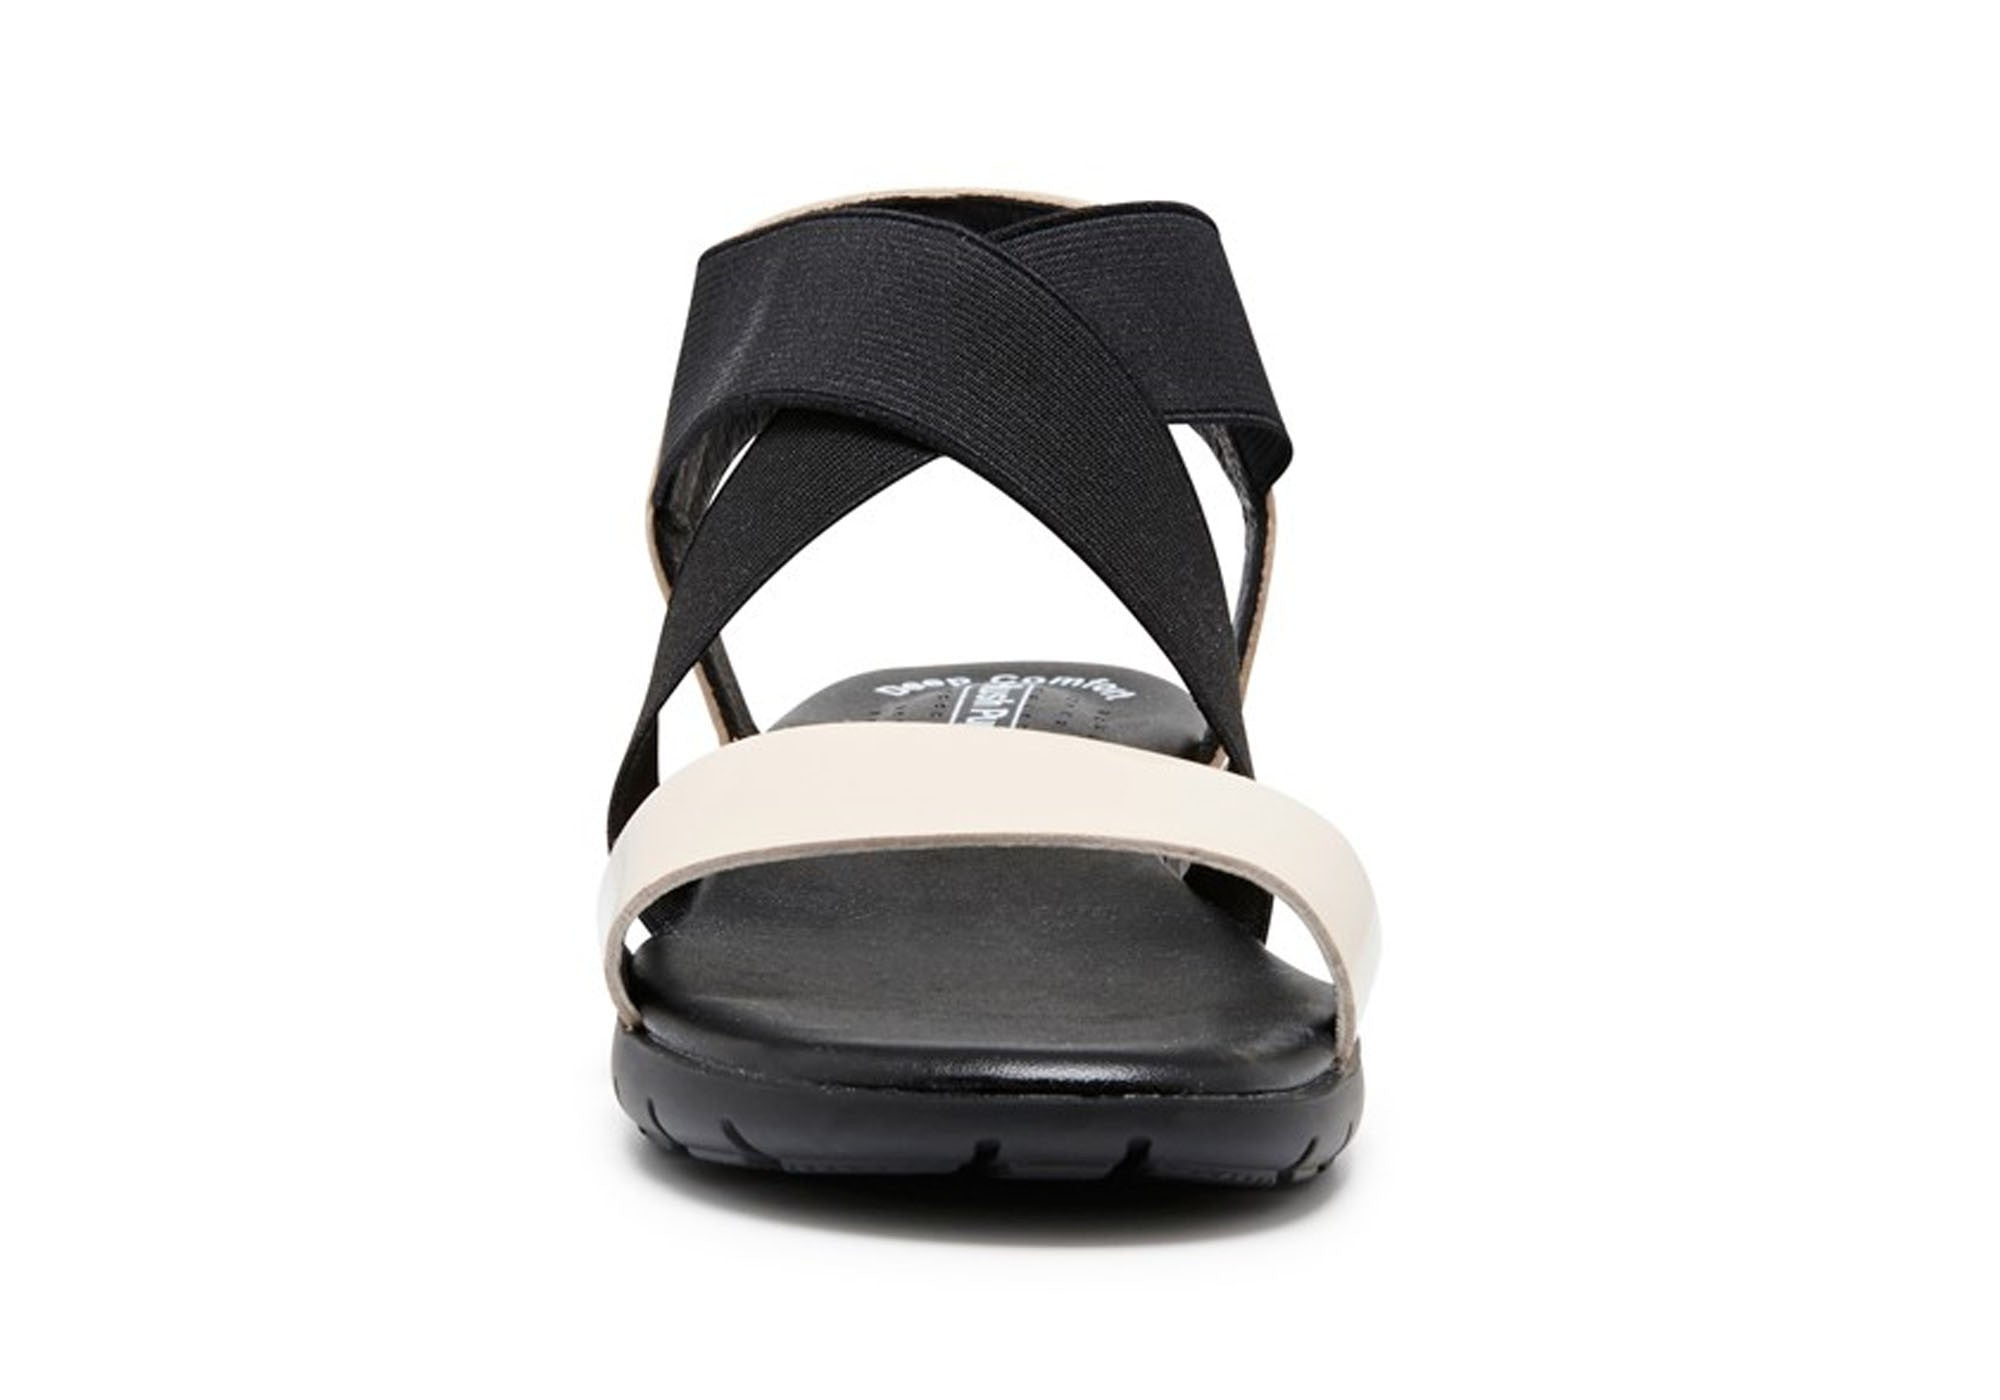 f675d23fe Home Hush Puppies Panama Womens Comfortable Sandals. Black Patent Black ·  Chalk Patent Black · Black Patent Black · Chalk Patent Black